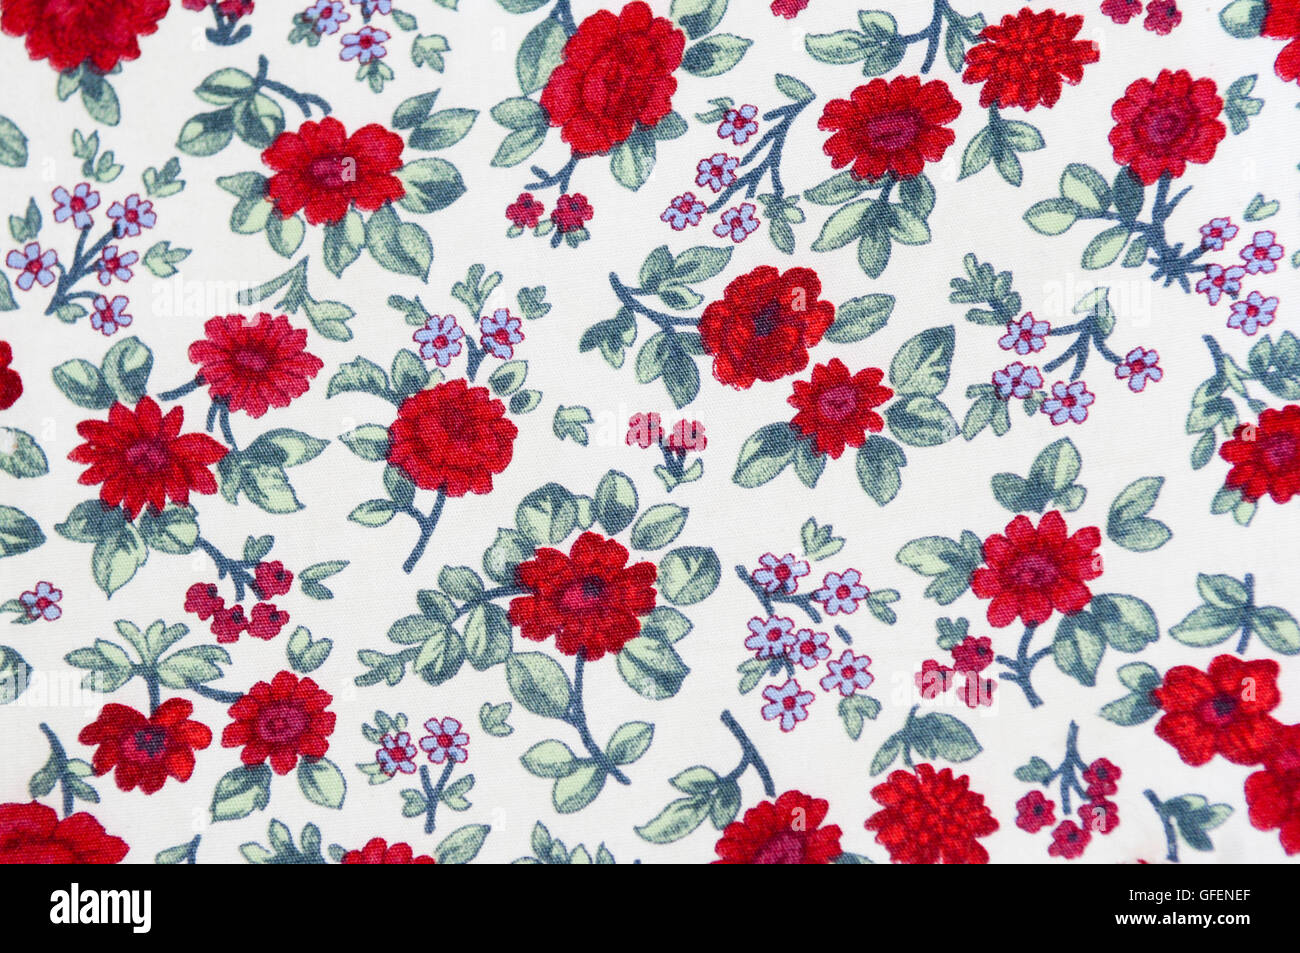 close up of printed Floral design on fabric - Stock Image